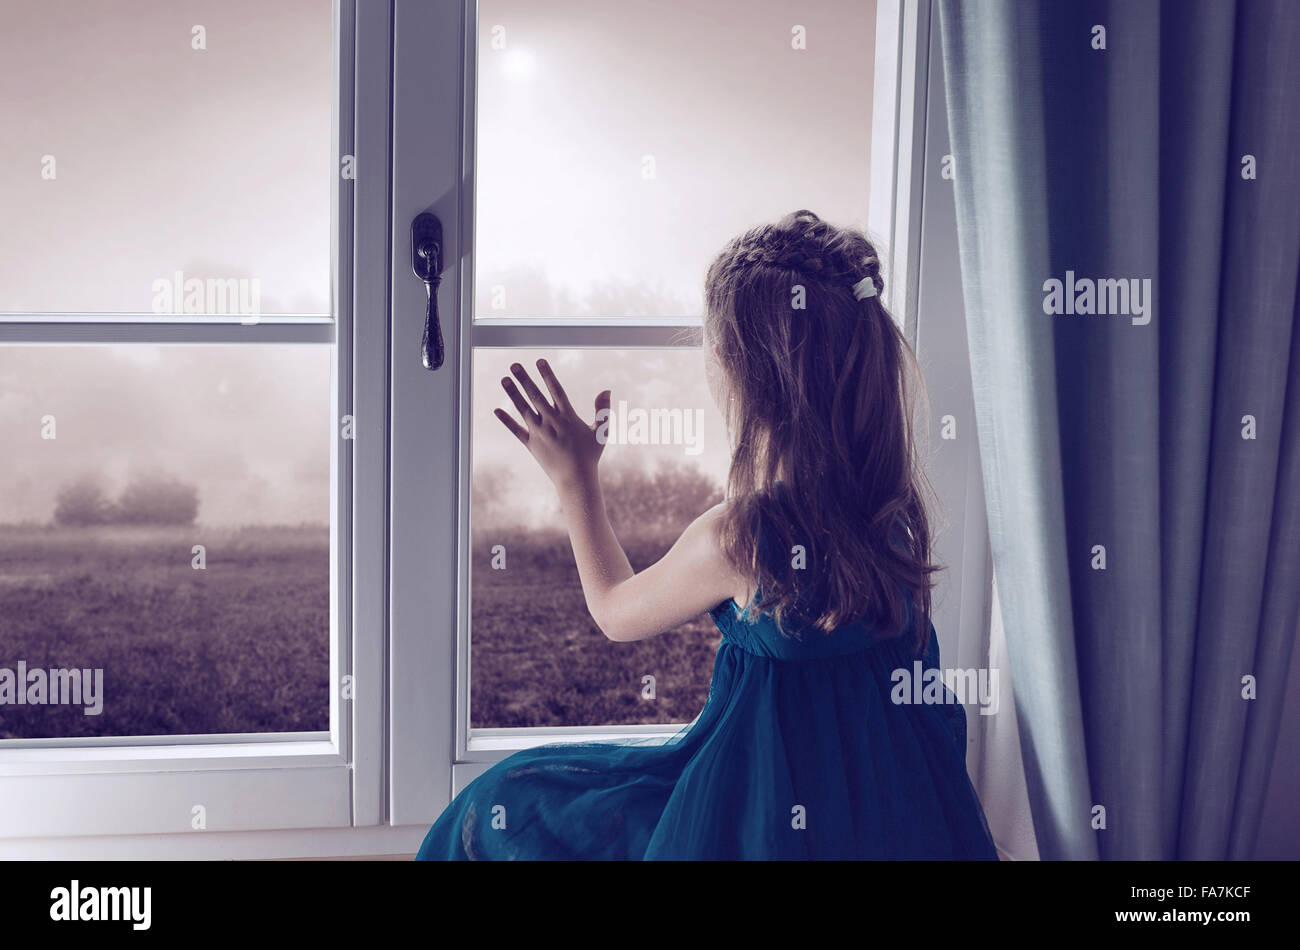 Miserable child looking through window - Stock Image